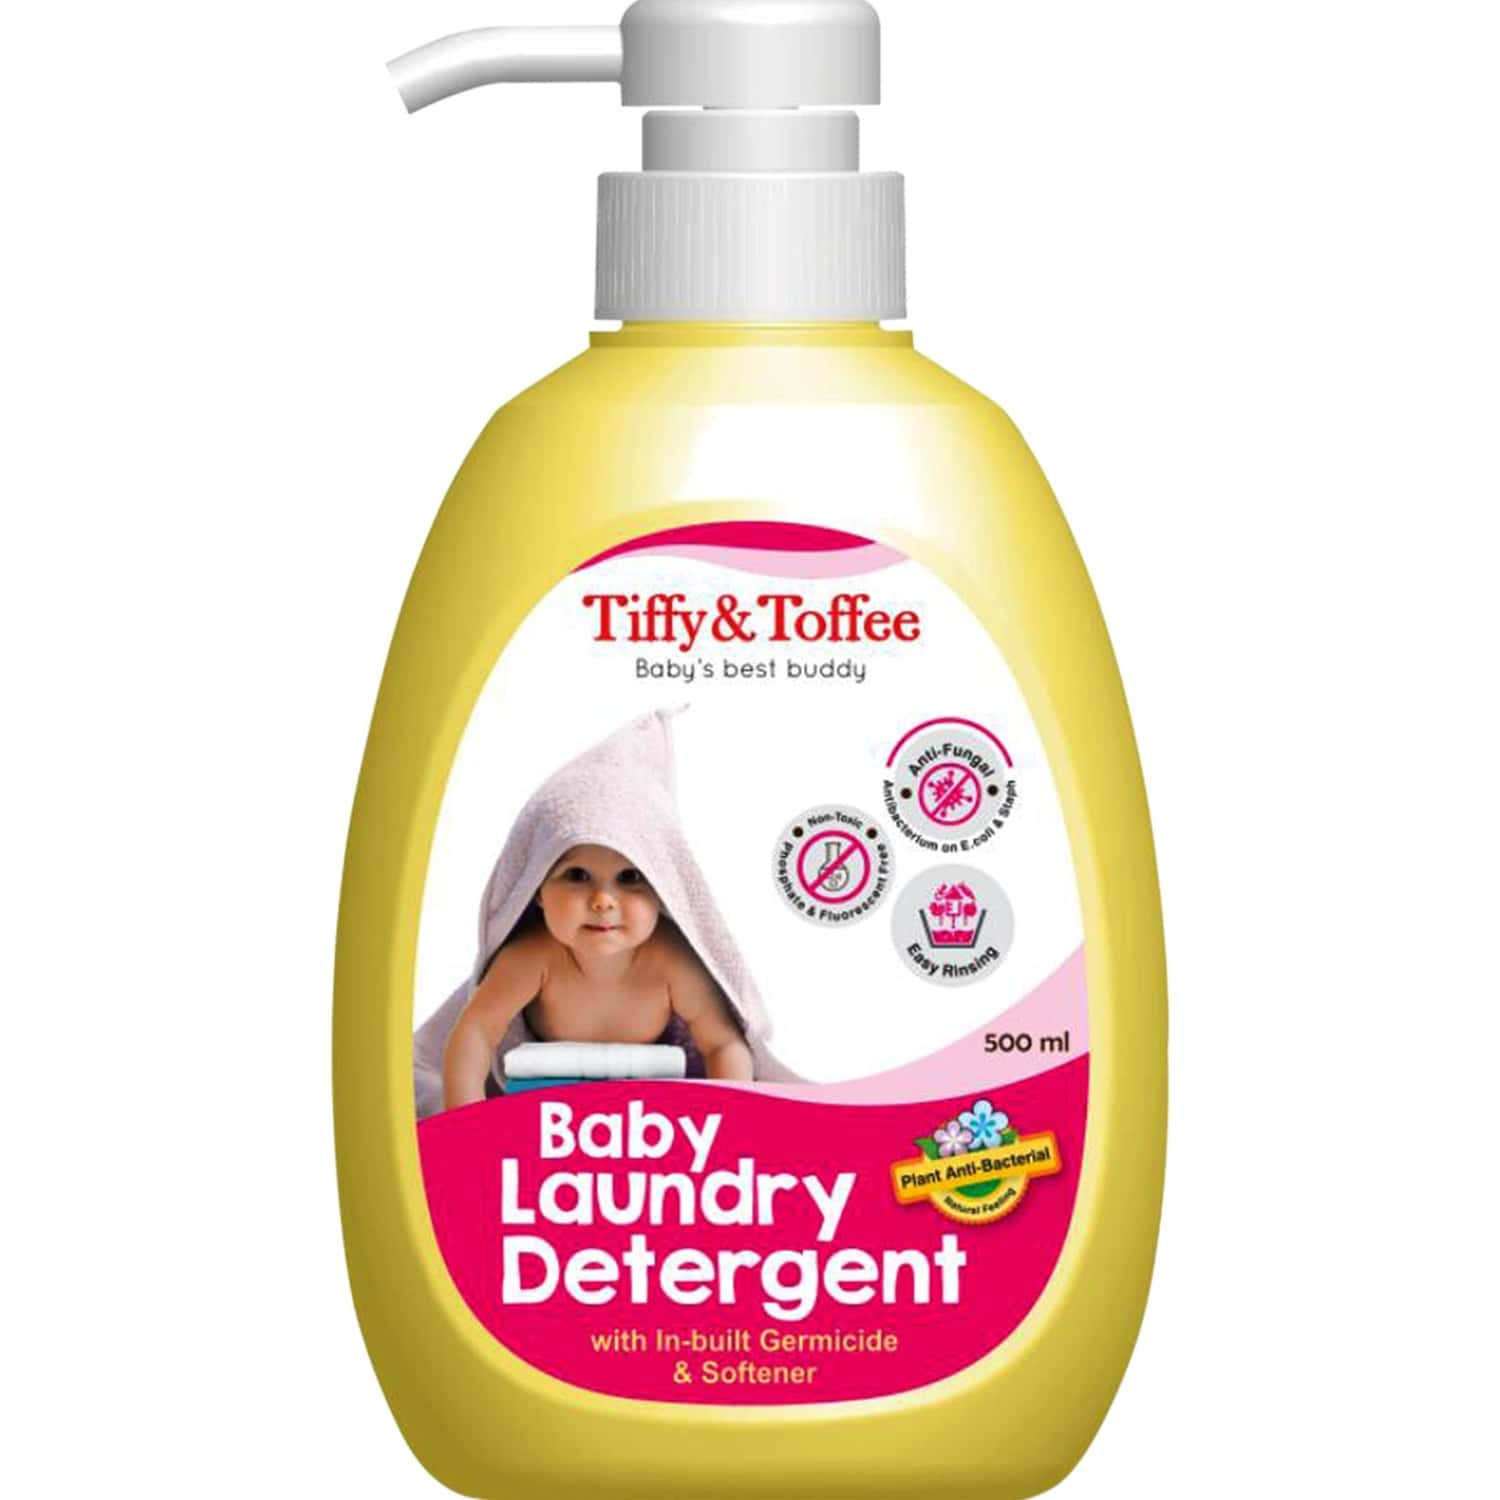 Tiffy & Toffee Baby Laundry Detergent With In-built Germicide And Softener - 500ml